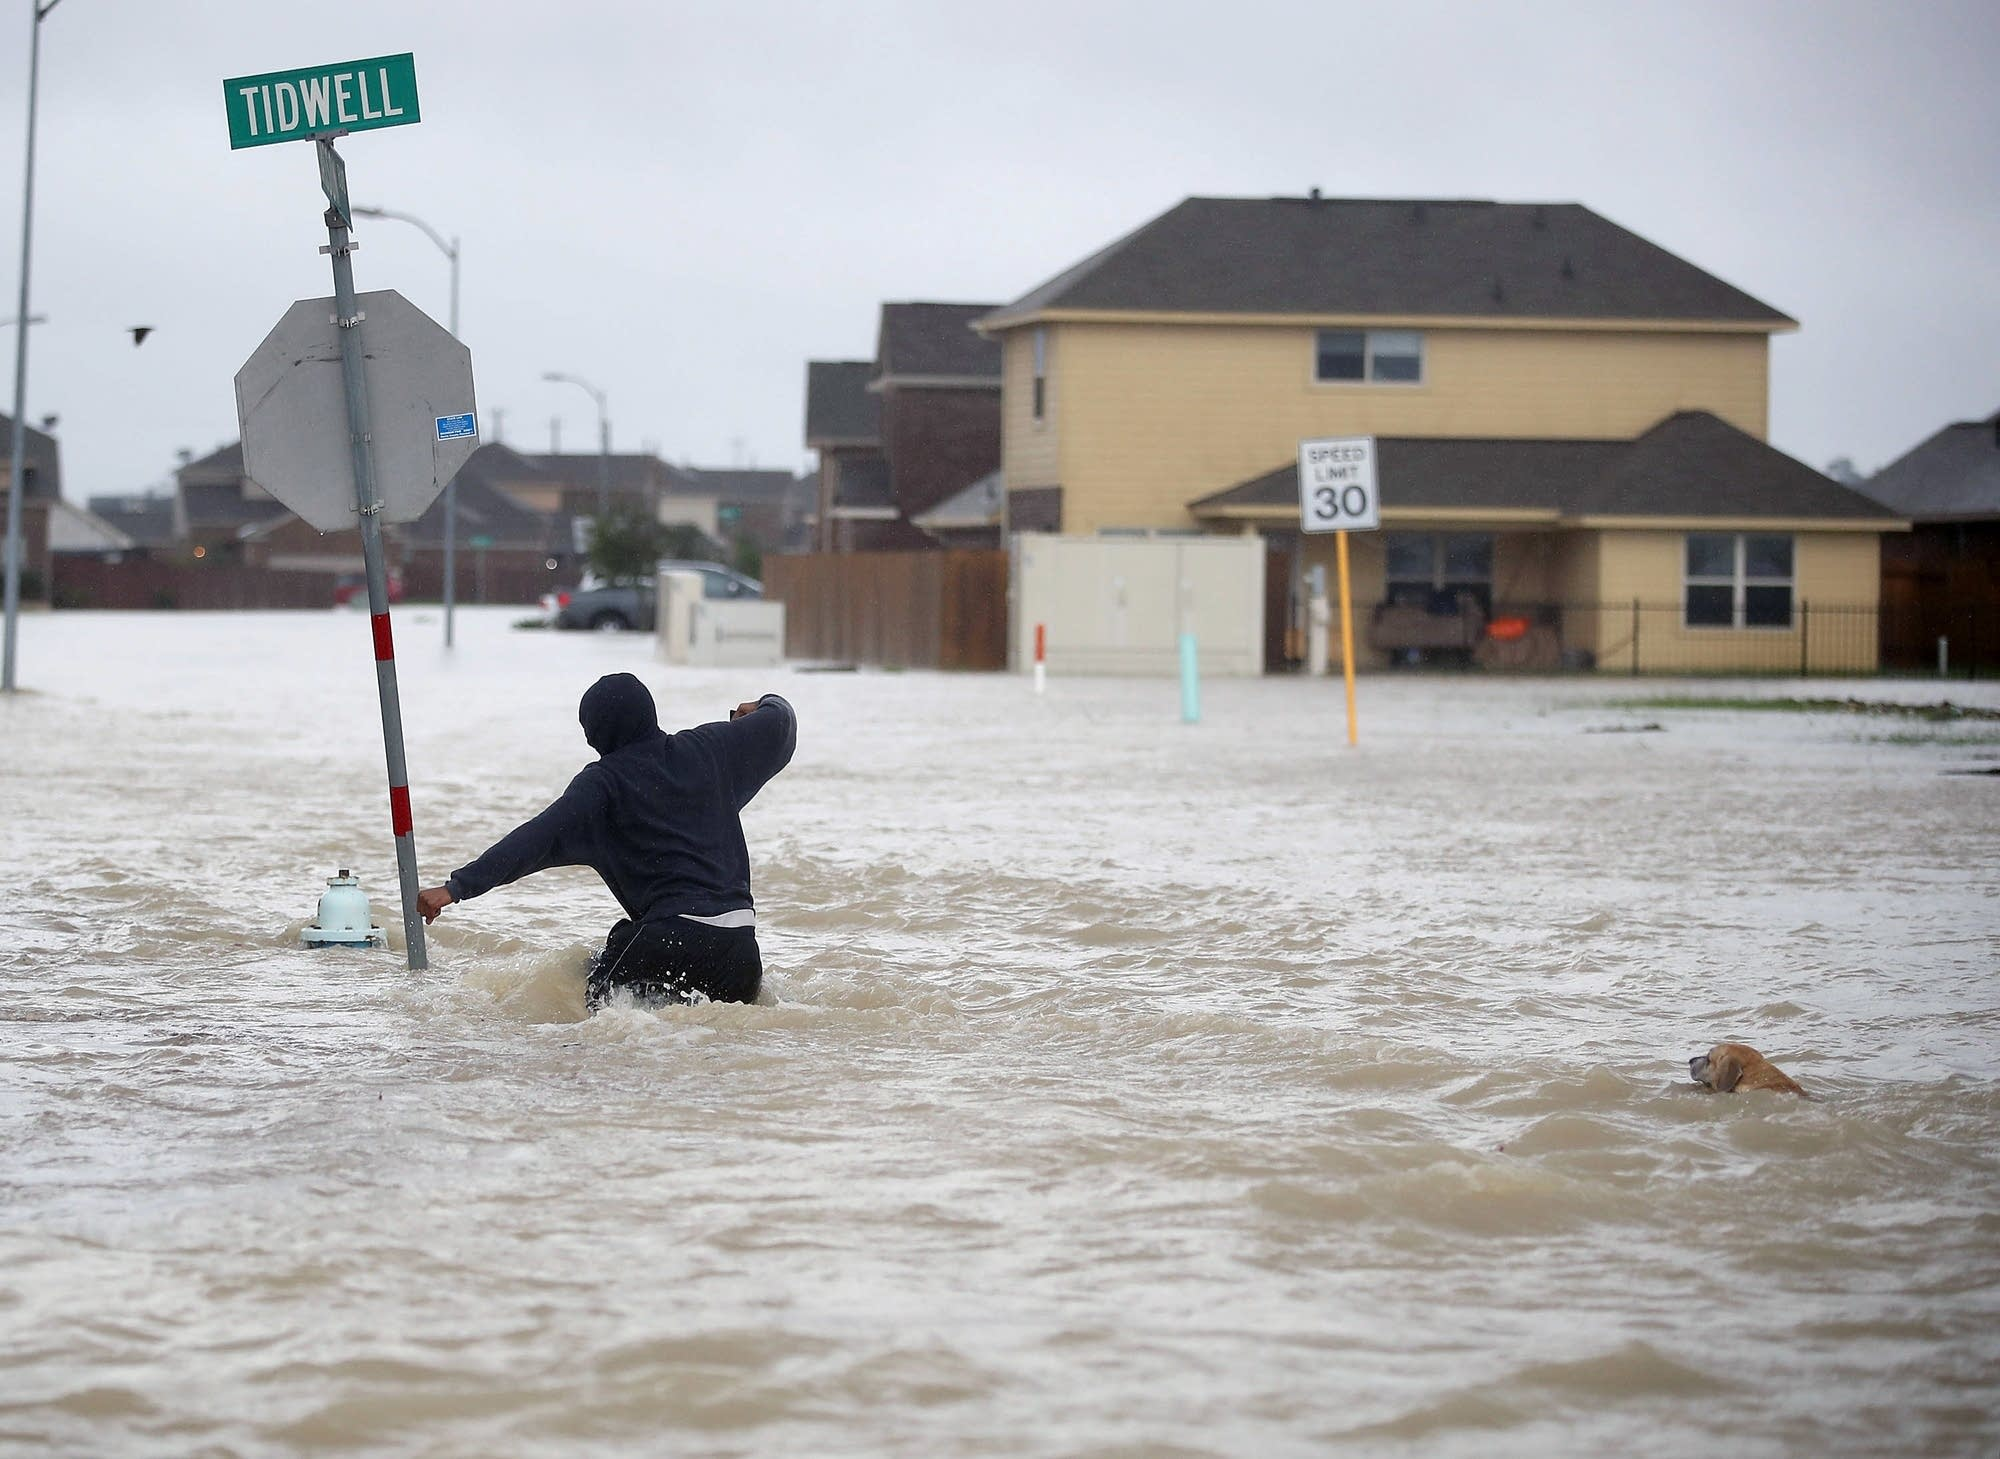 A person walks through a flooded street with a dog.